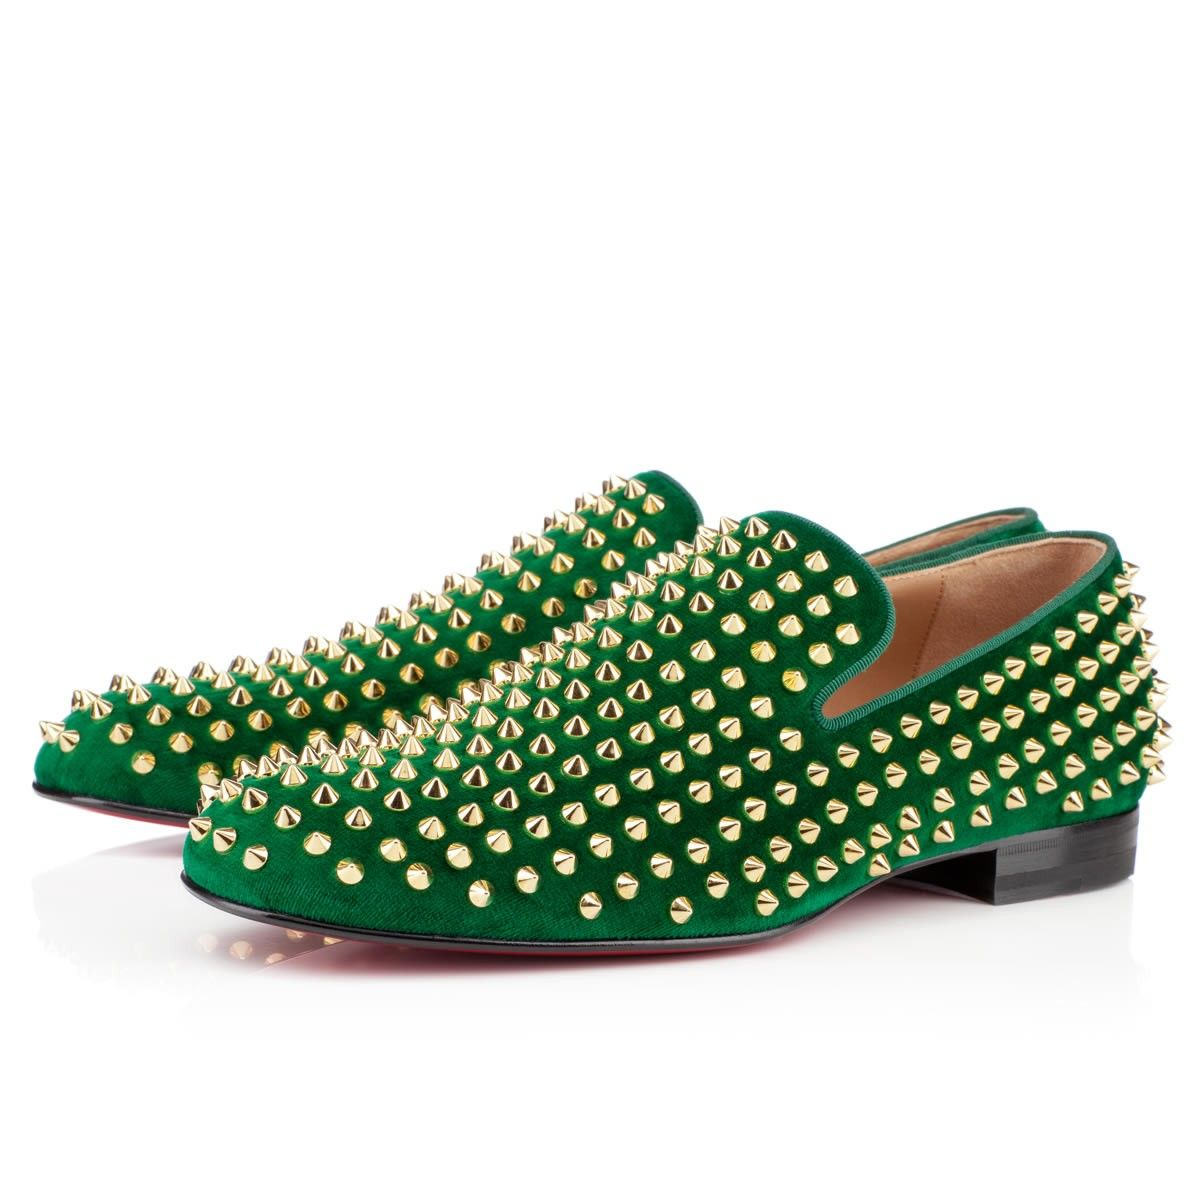 #ChristianLouboutin #mens #shoes #aw1314